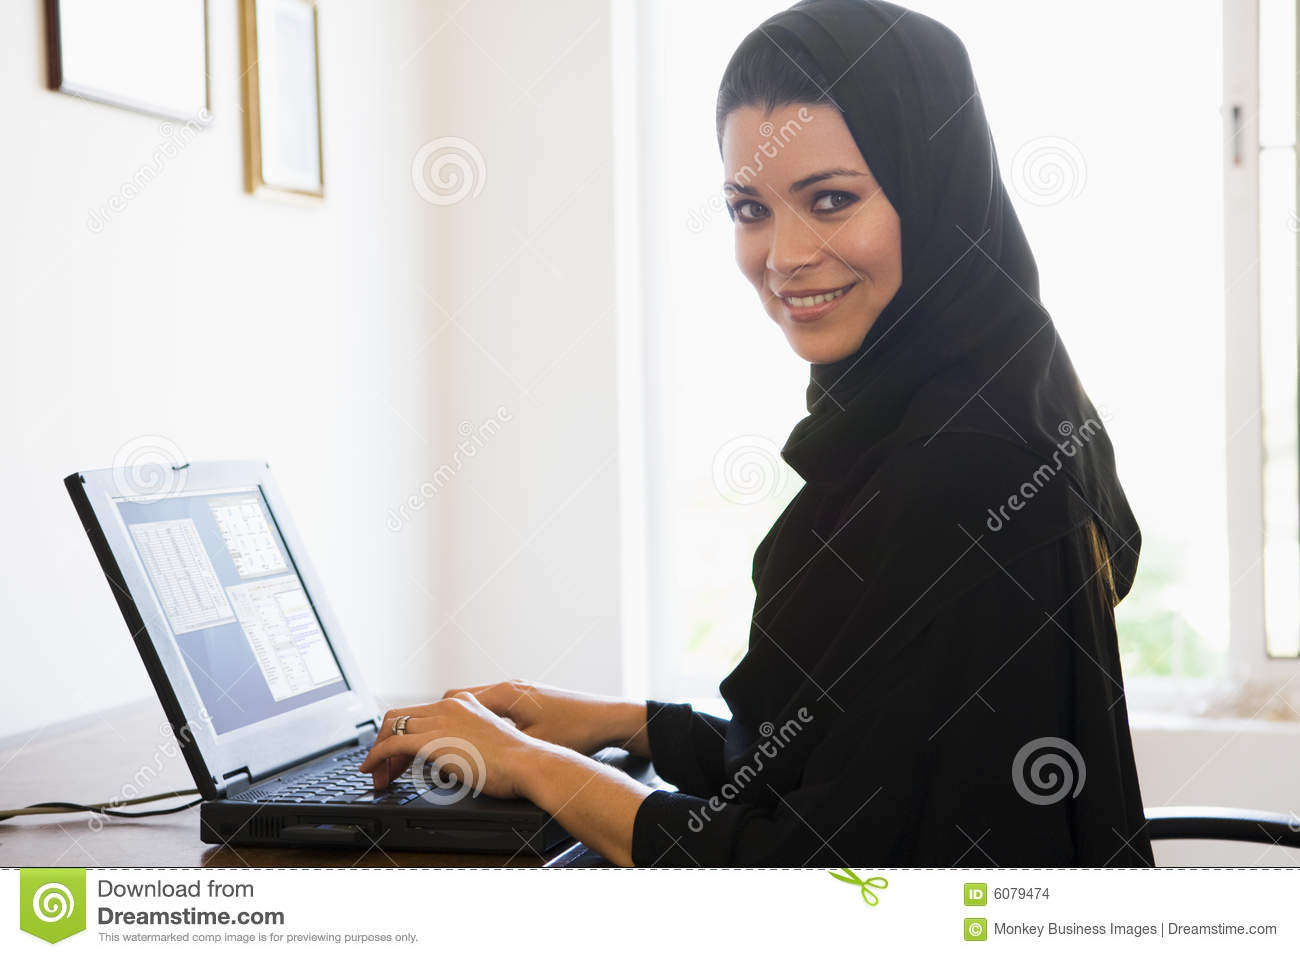 guy middle eastern single women Single arab women matches: more photos kari-iwdwc  middle eastern  arab women single in stockton religion: atheist.